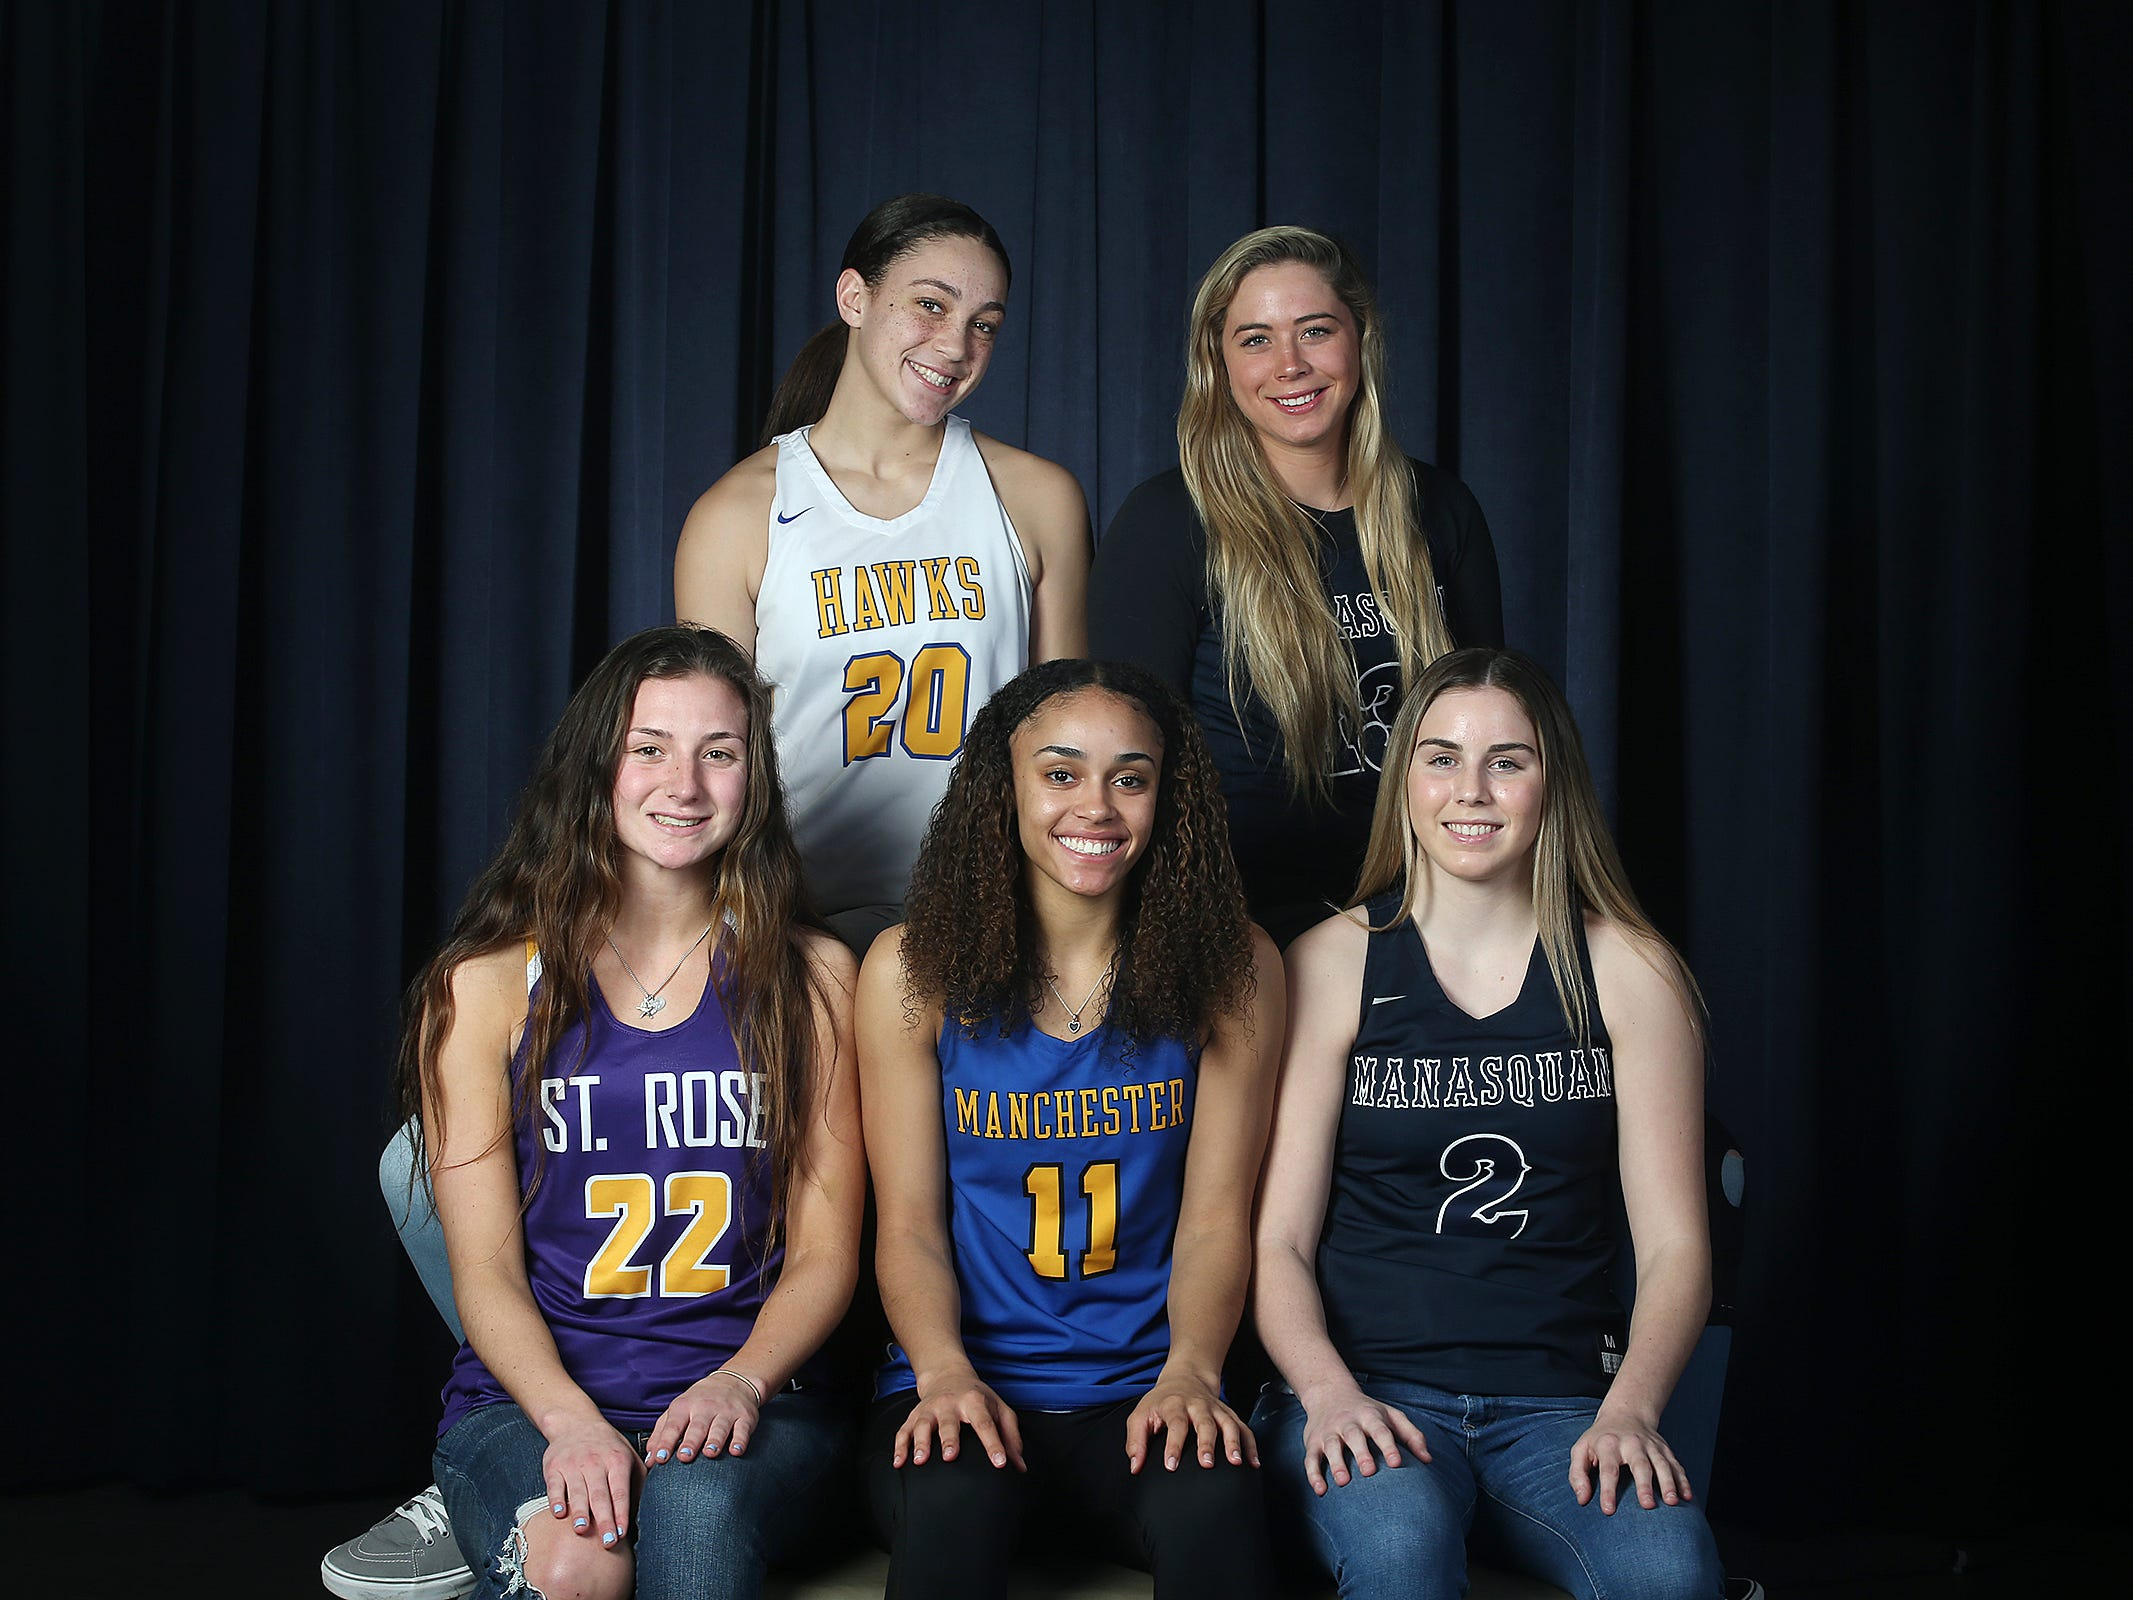 (top L-R) Destiny Adams of Manchester High School, Faith Masonius of Manasquan High School, (bottom L-R) Brynn Farrell of St. Rose High School, Leilani Correa of Manchester High School and Lola Mullaney of Manasquan High School during the All-Shore girls basketball team photo shoot at the Asbury Park Press in Neptune, NJ Tuesday, March 19, 2019.